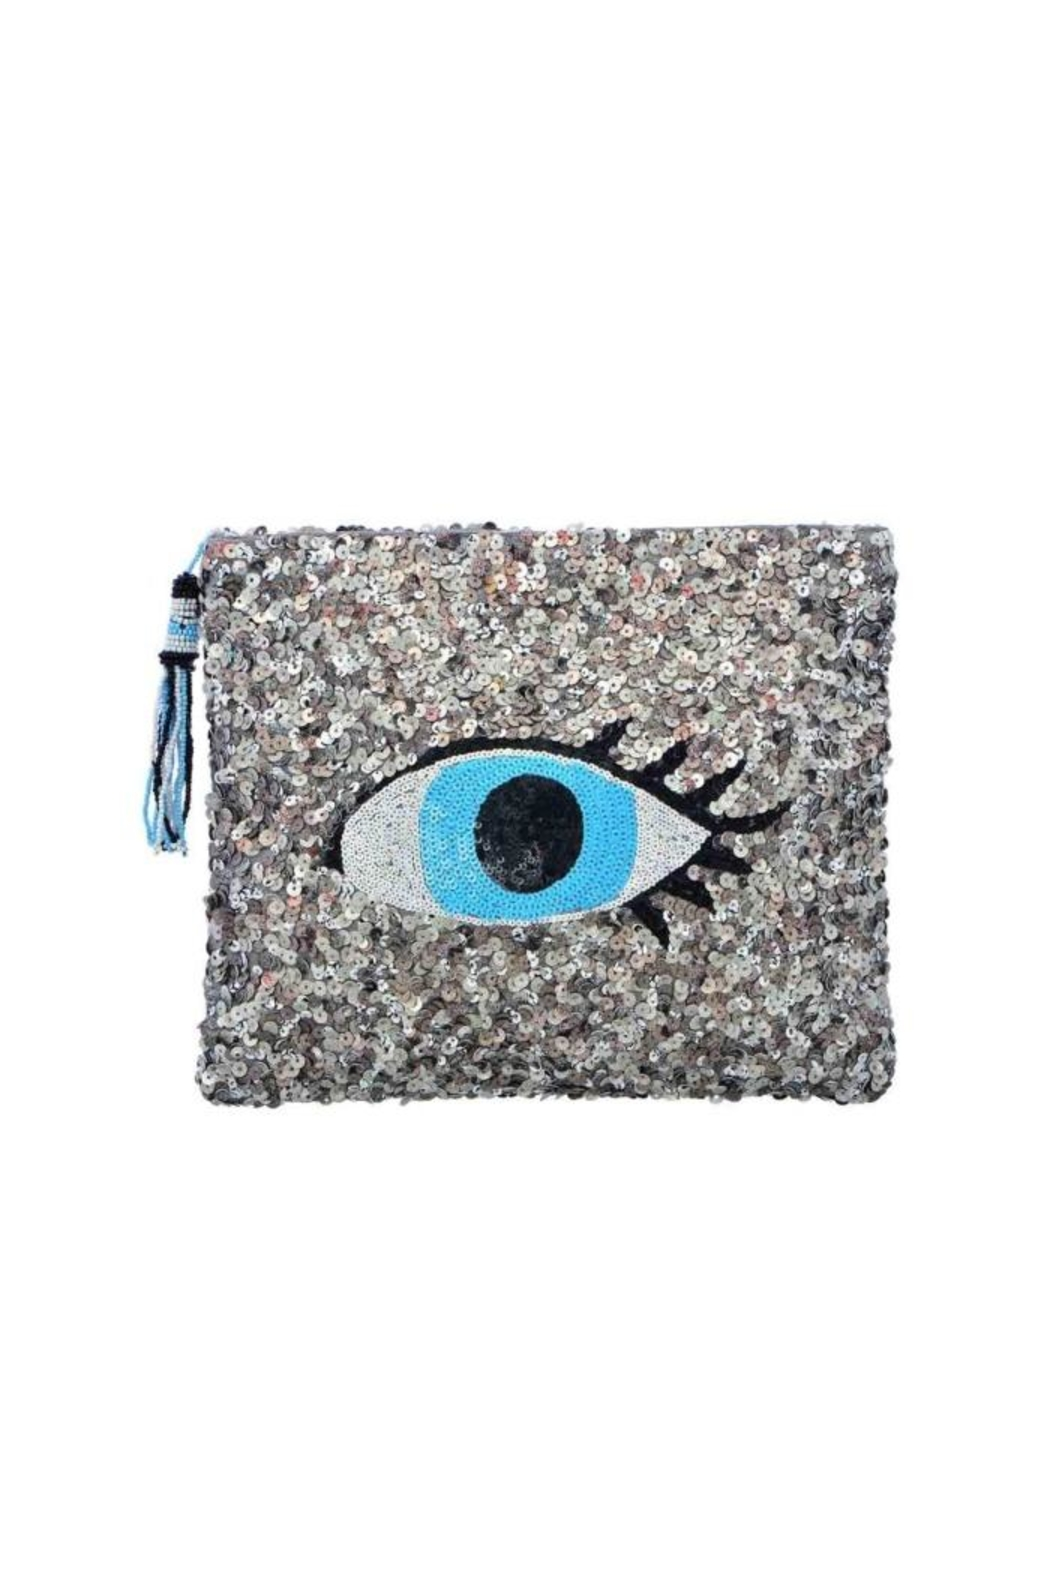 Guadalupe Design Ankhe' Evil-Eye Clutch - Main Image